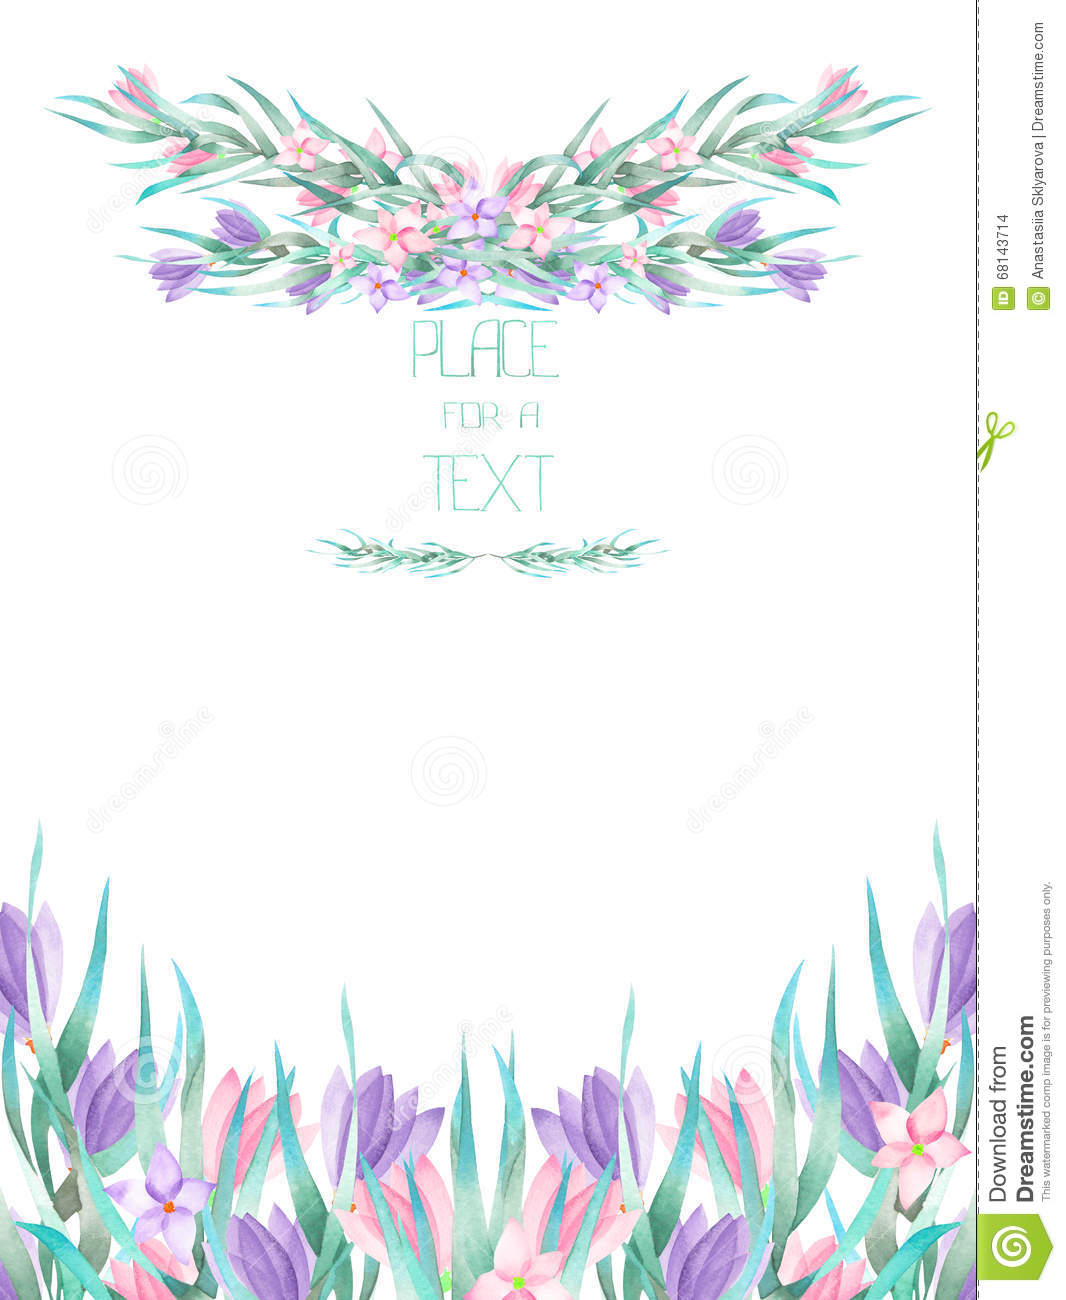 A Frame Border Template Of A Postcard With The Watercolor Crocus Flowers And Branches Wedding